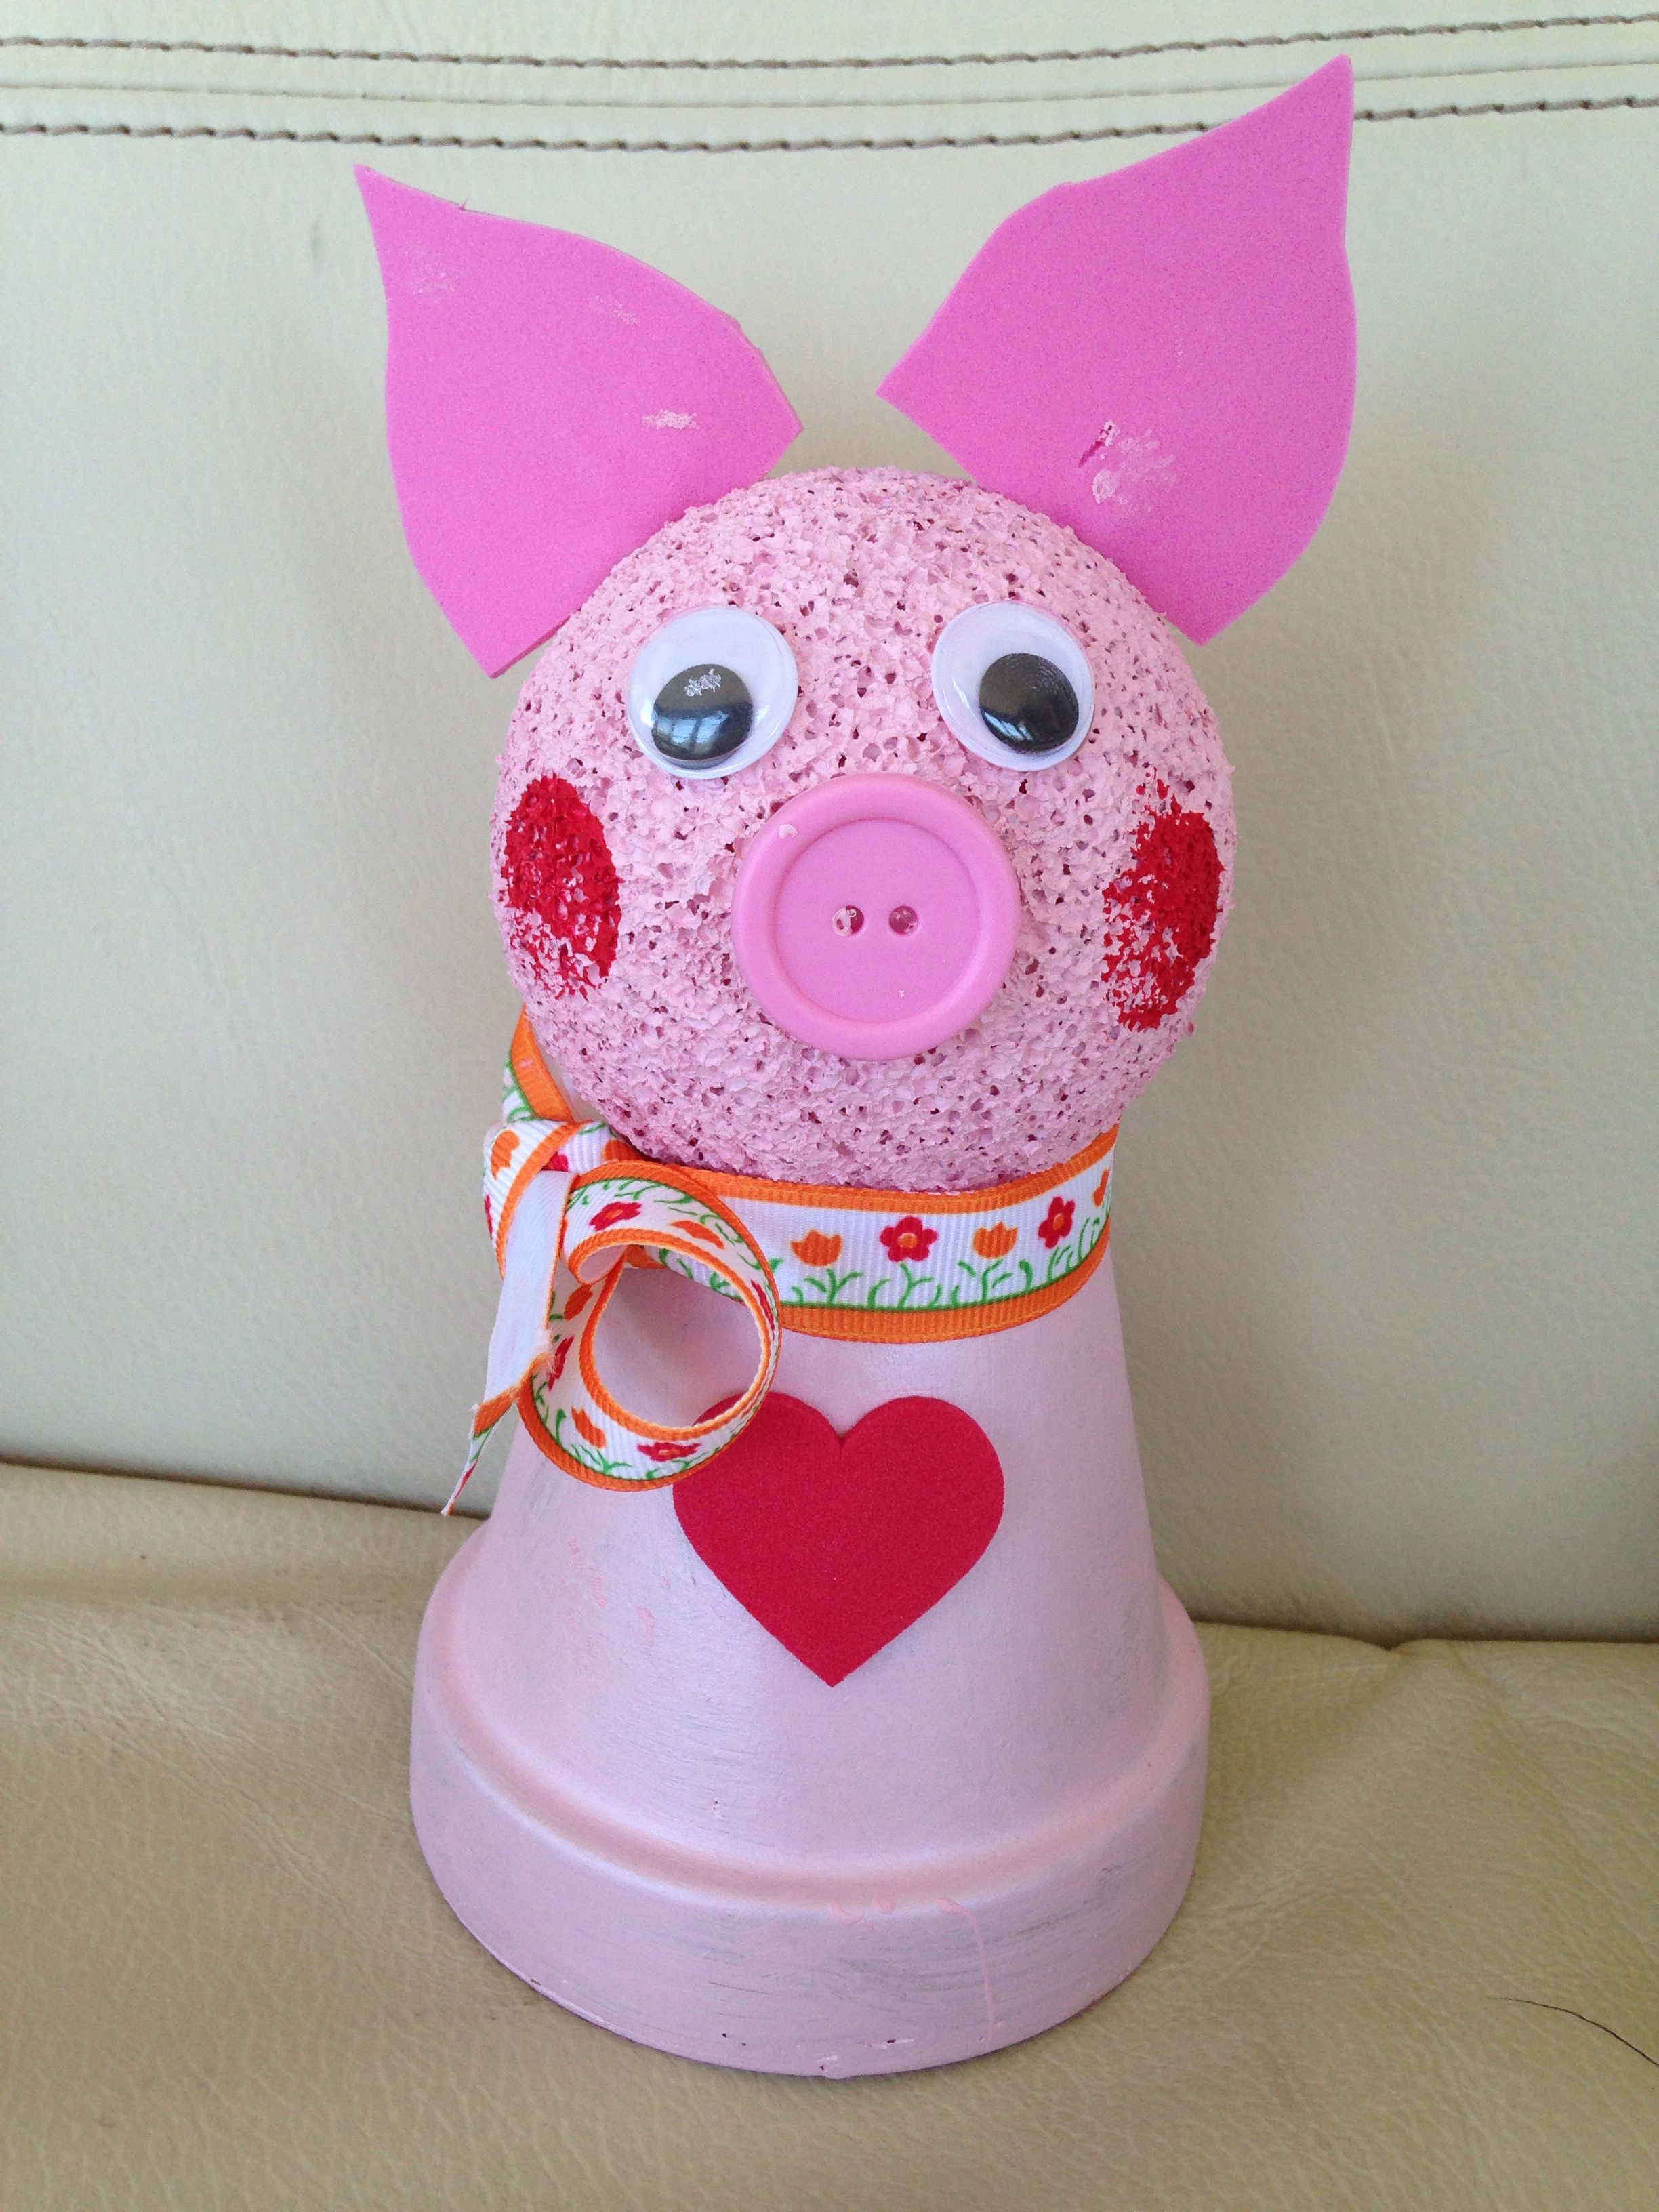 Fun pig craft with painted pot and styrofoam ball. Visit our website at bostonparentspaper.com